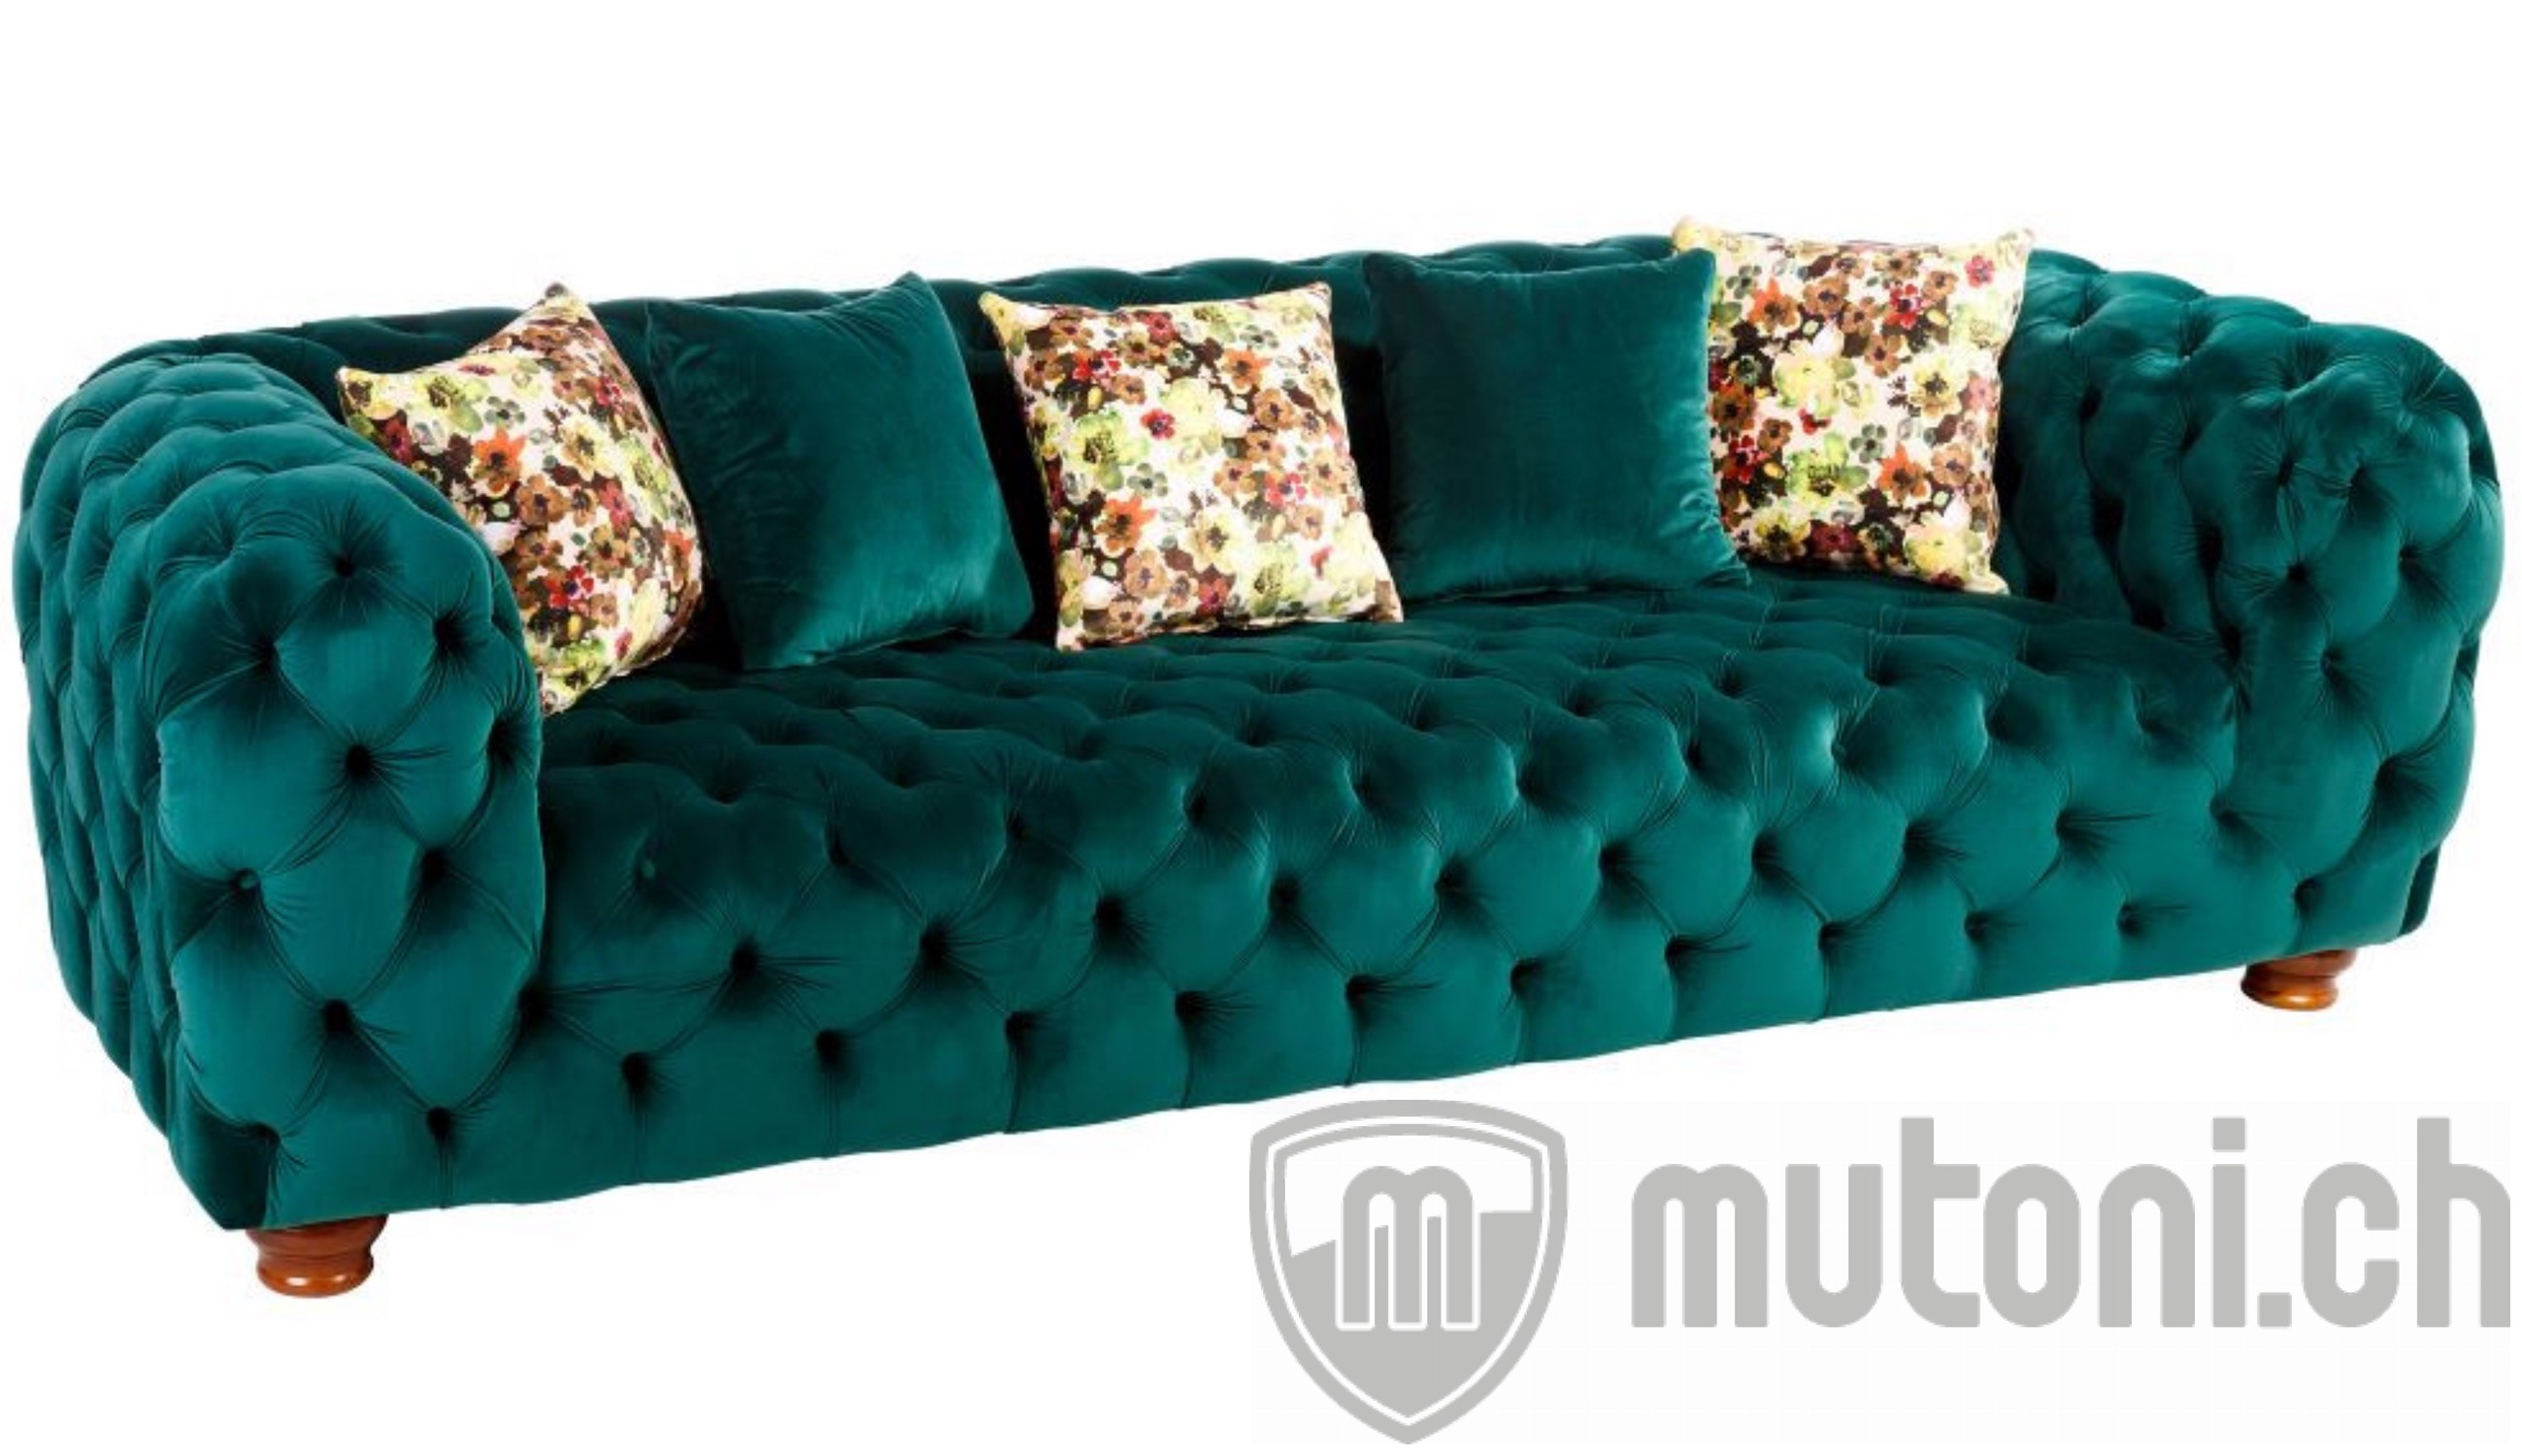 chesterfield sofa opulent gr n 250 mutoni vintage. Black Bedroom Furniture Sets. Home Design Ideas